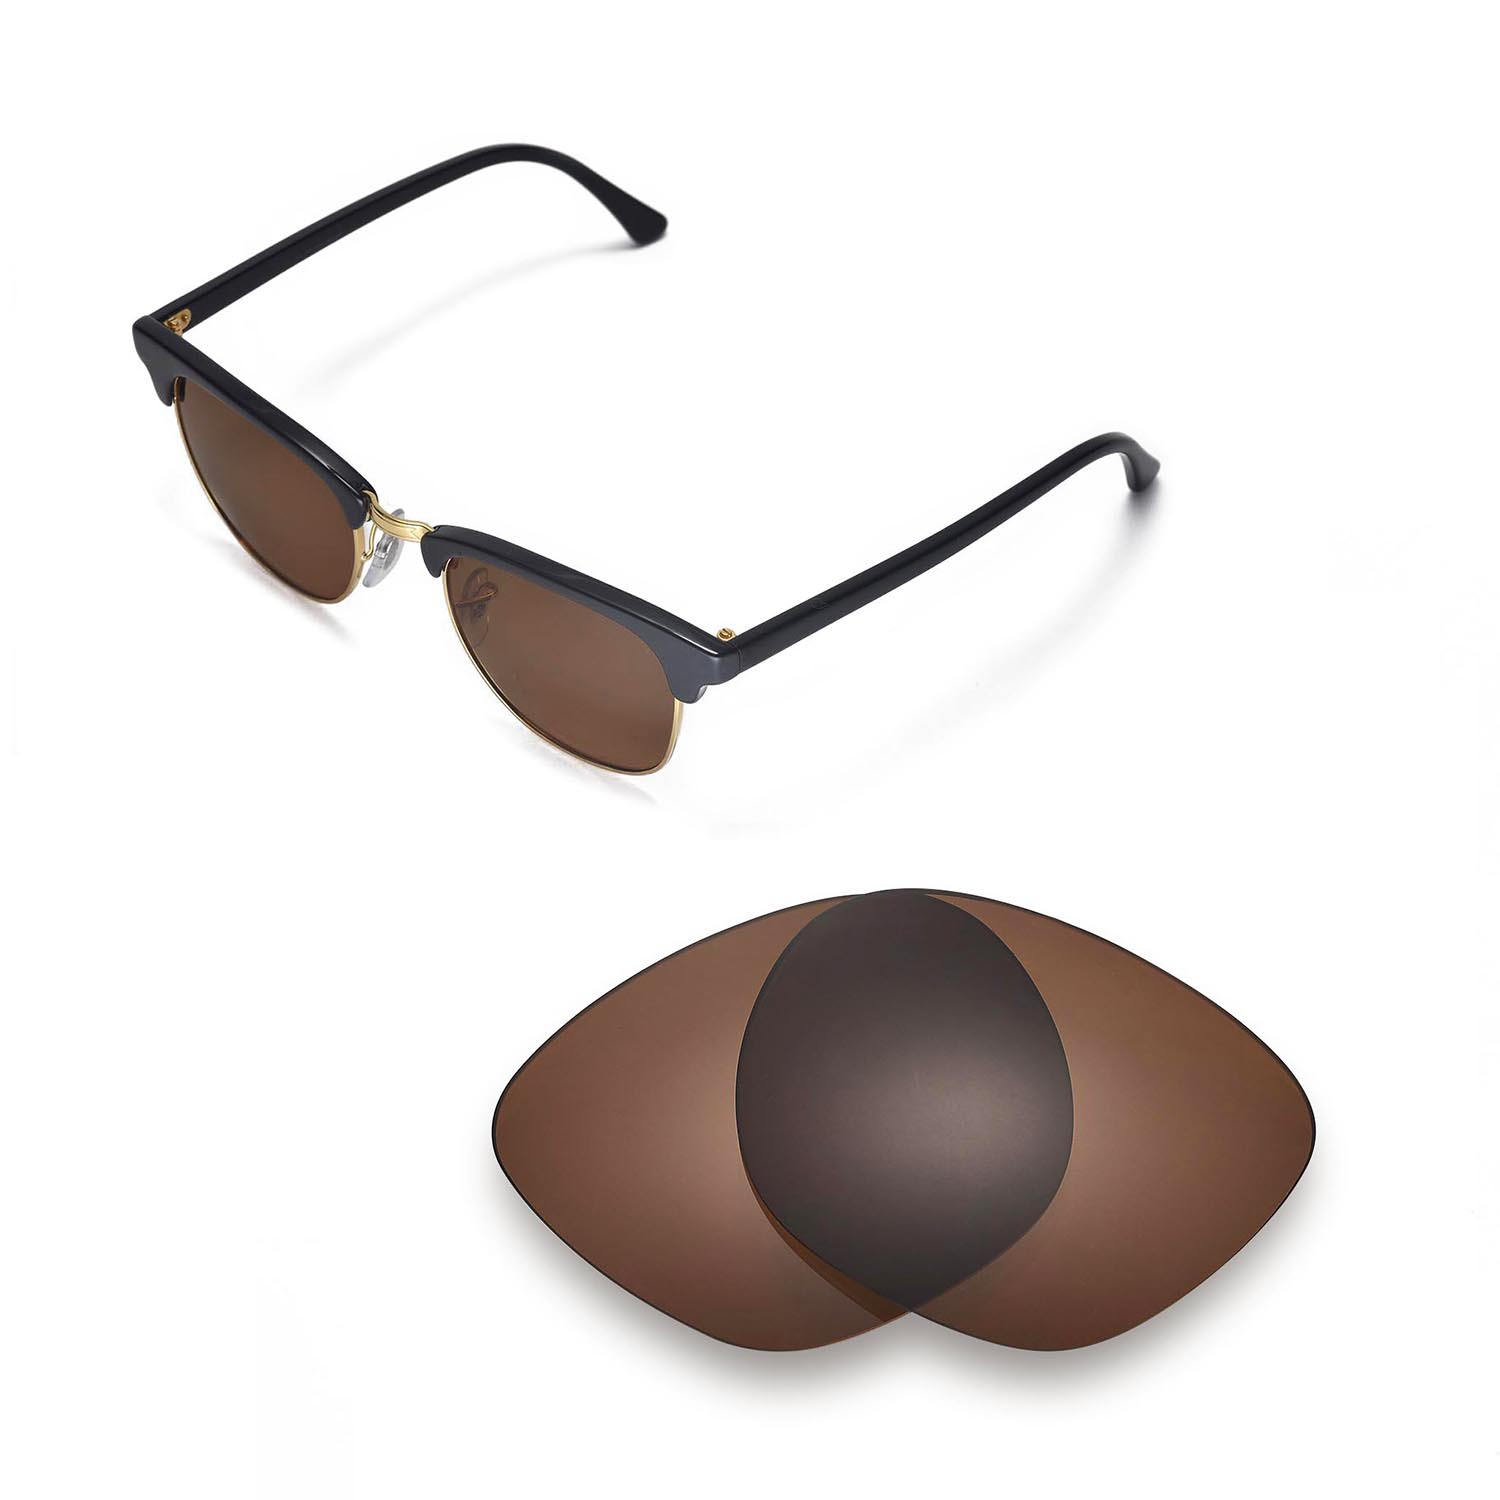 2b6a1eb34b Details about Walleva Polarized Brown Lenses For Ray-Ban Clubmaster RB3016  49mm Sunglasses